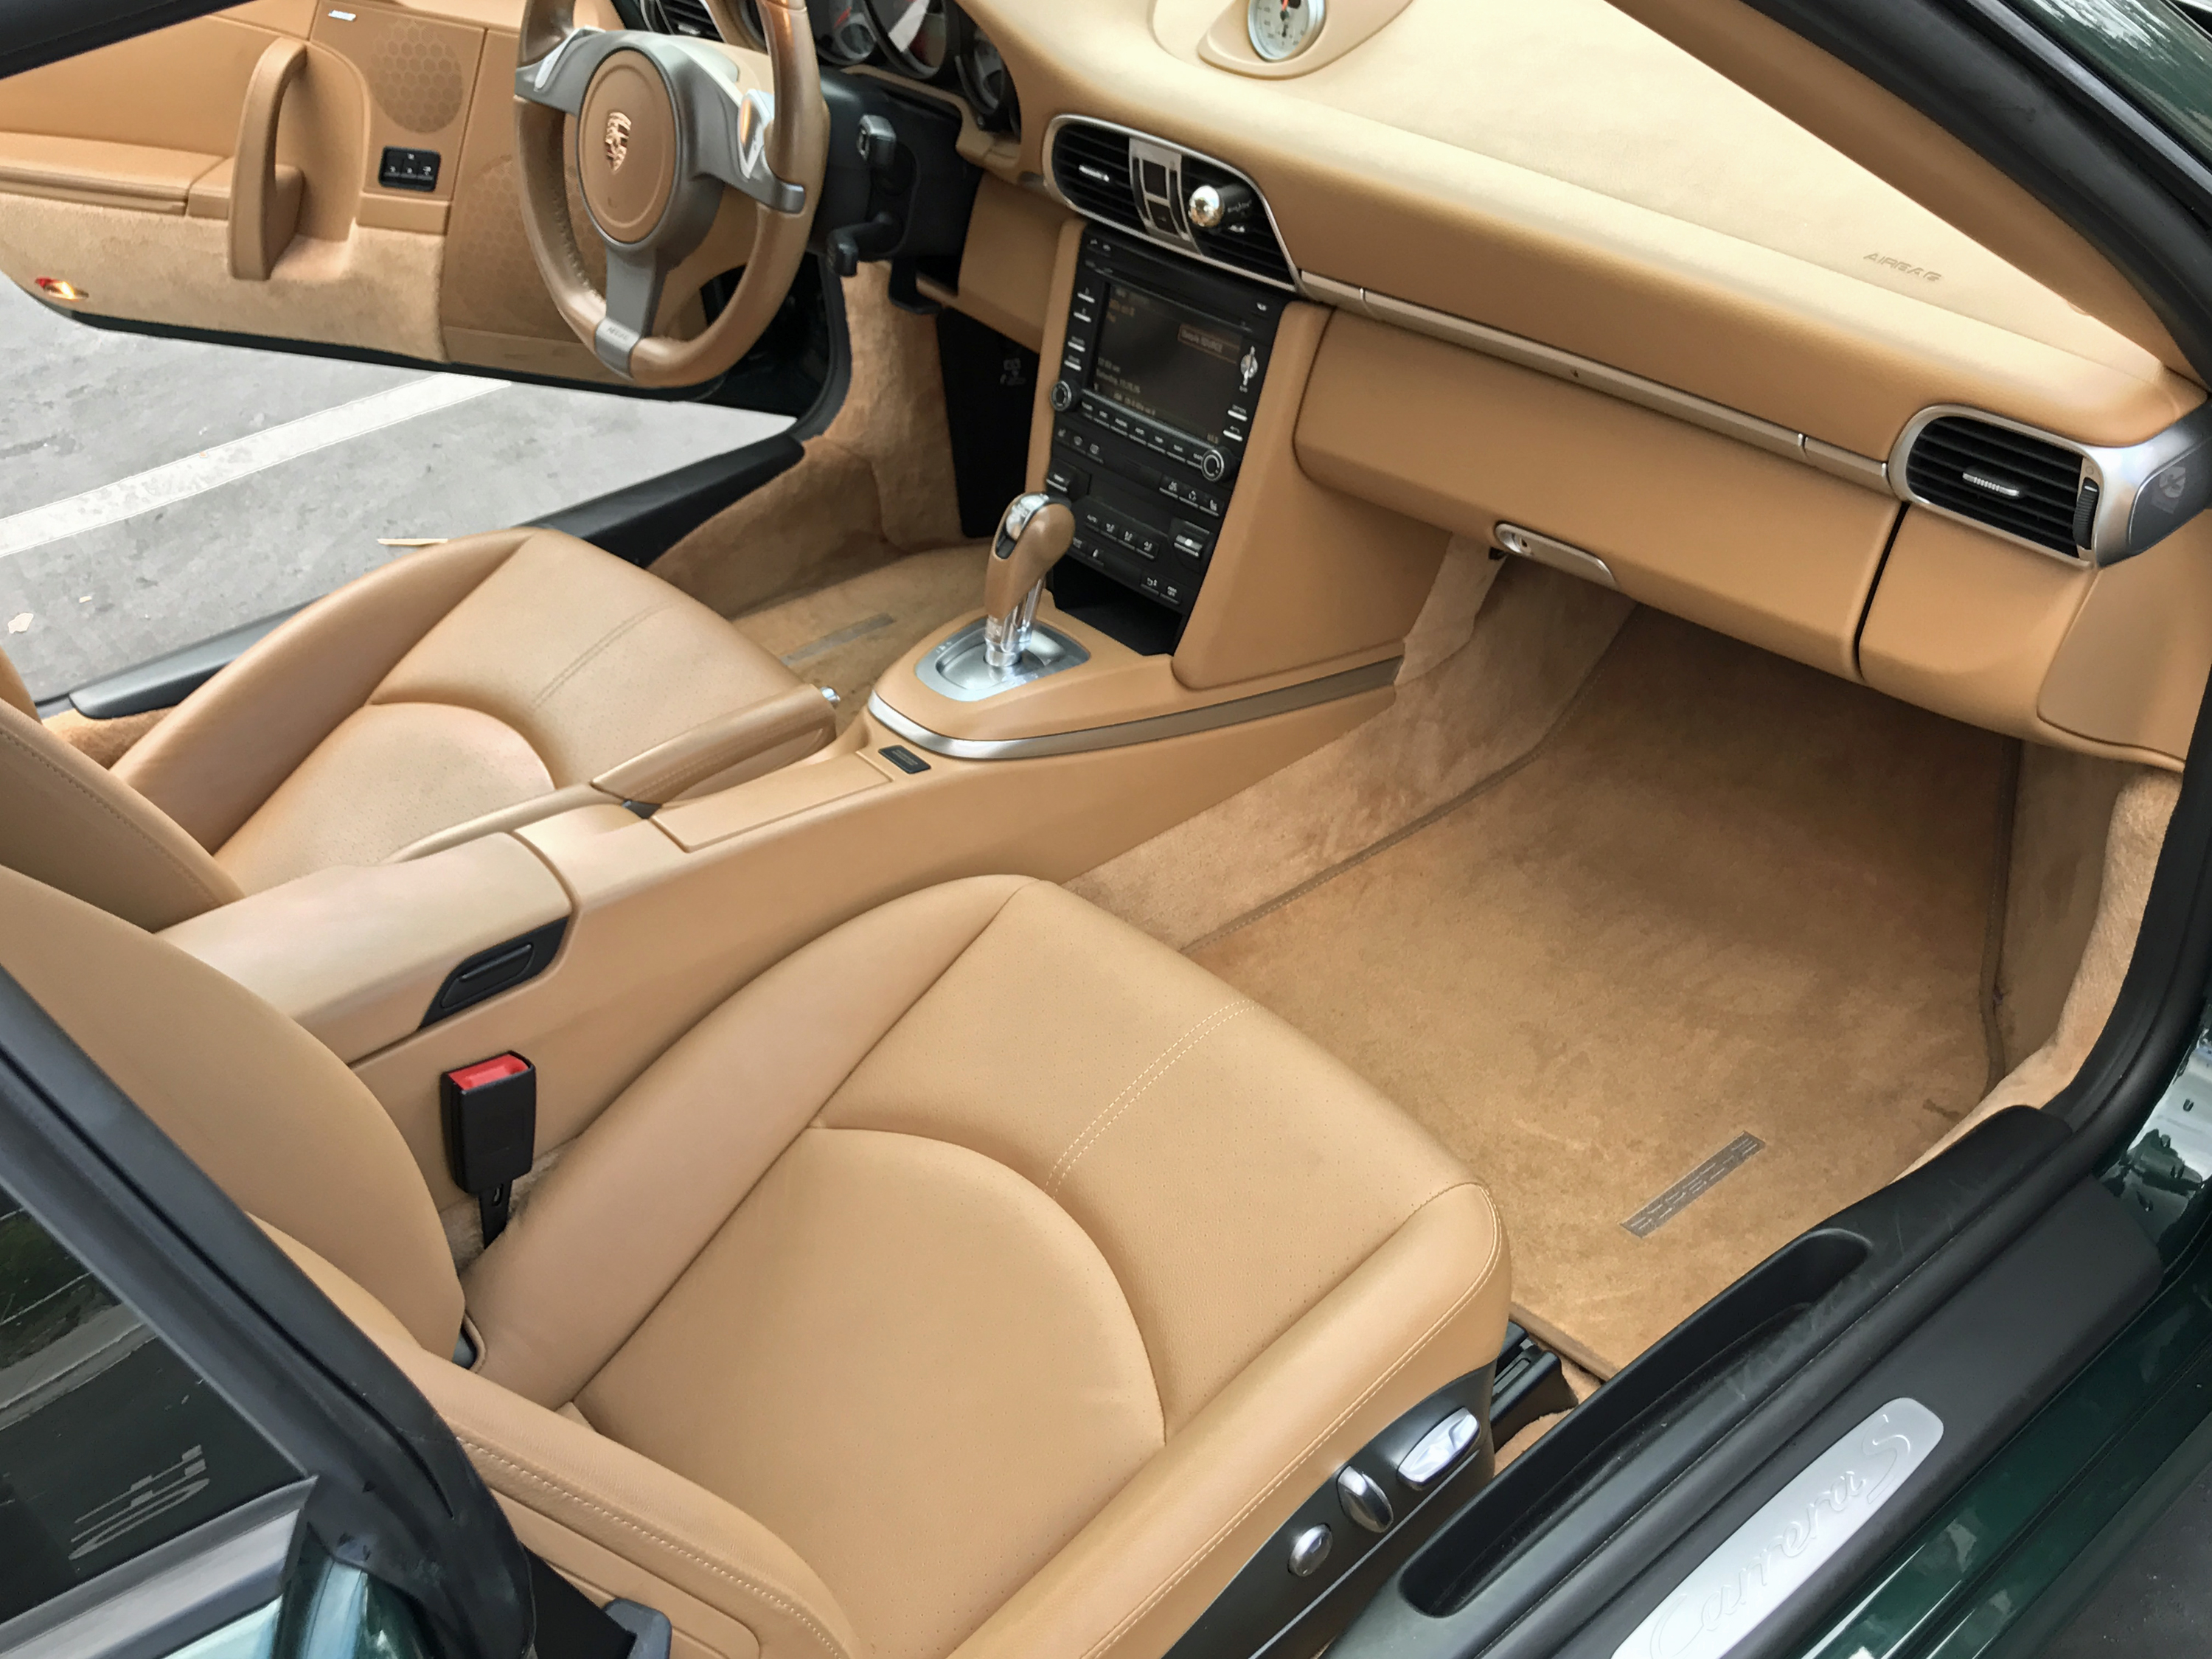 2009 Porsche 911 Carerra S Interior